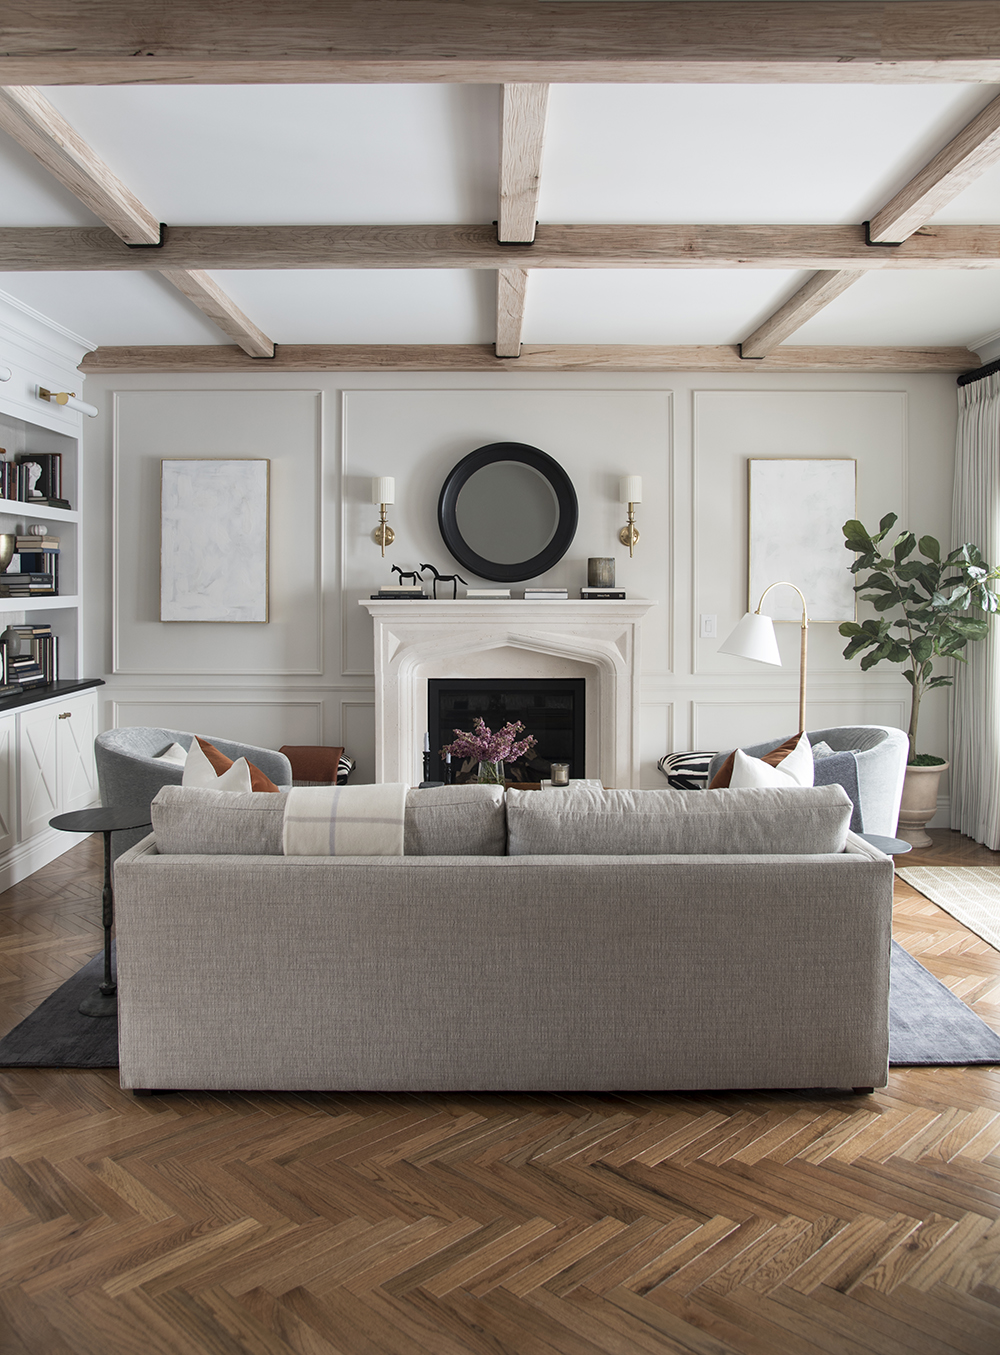 The Formal Living Room : One Room Challenge – Room Reveal - roomfortuesday.com